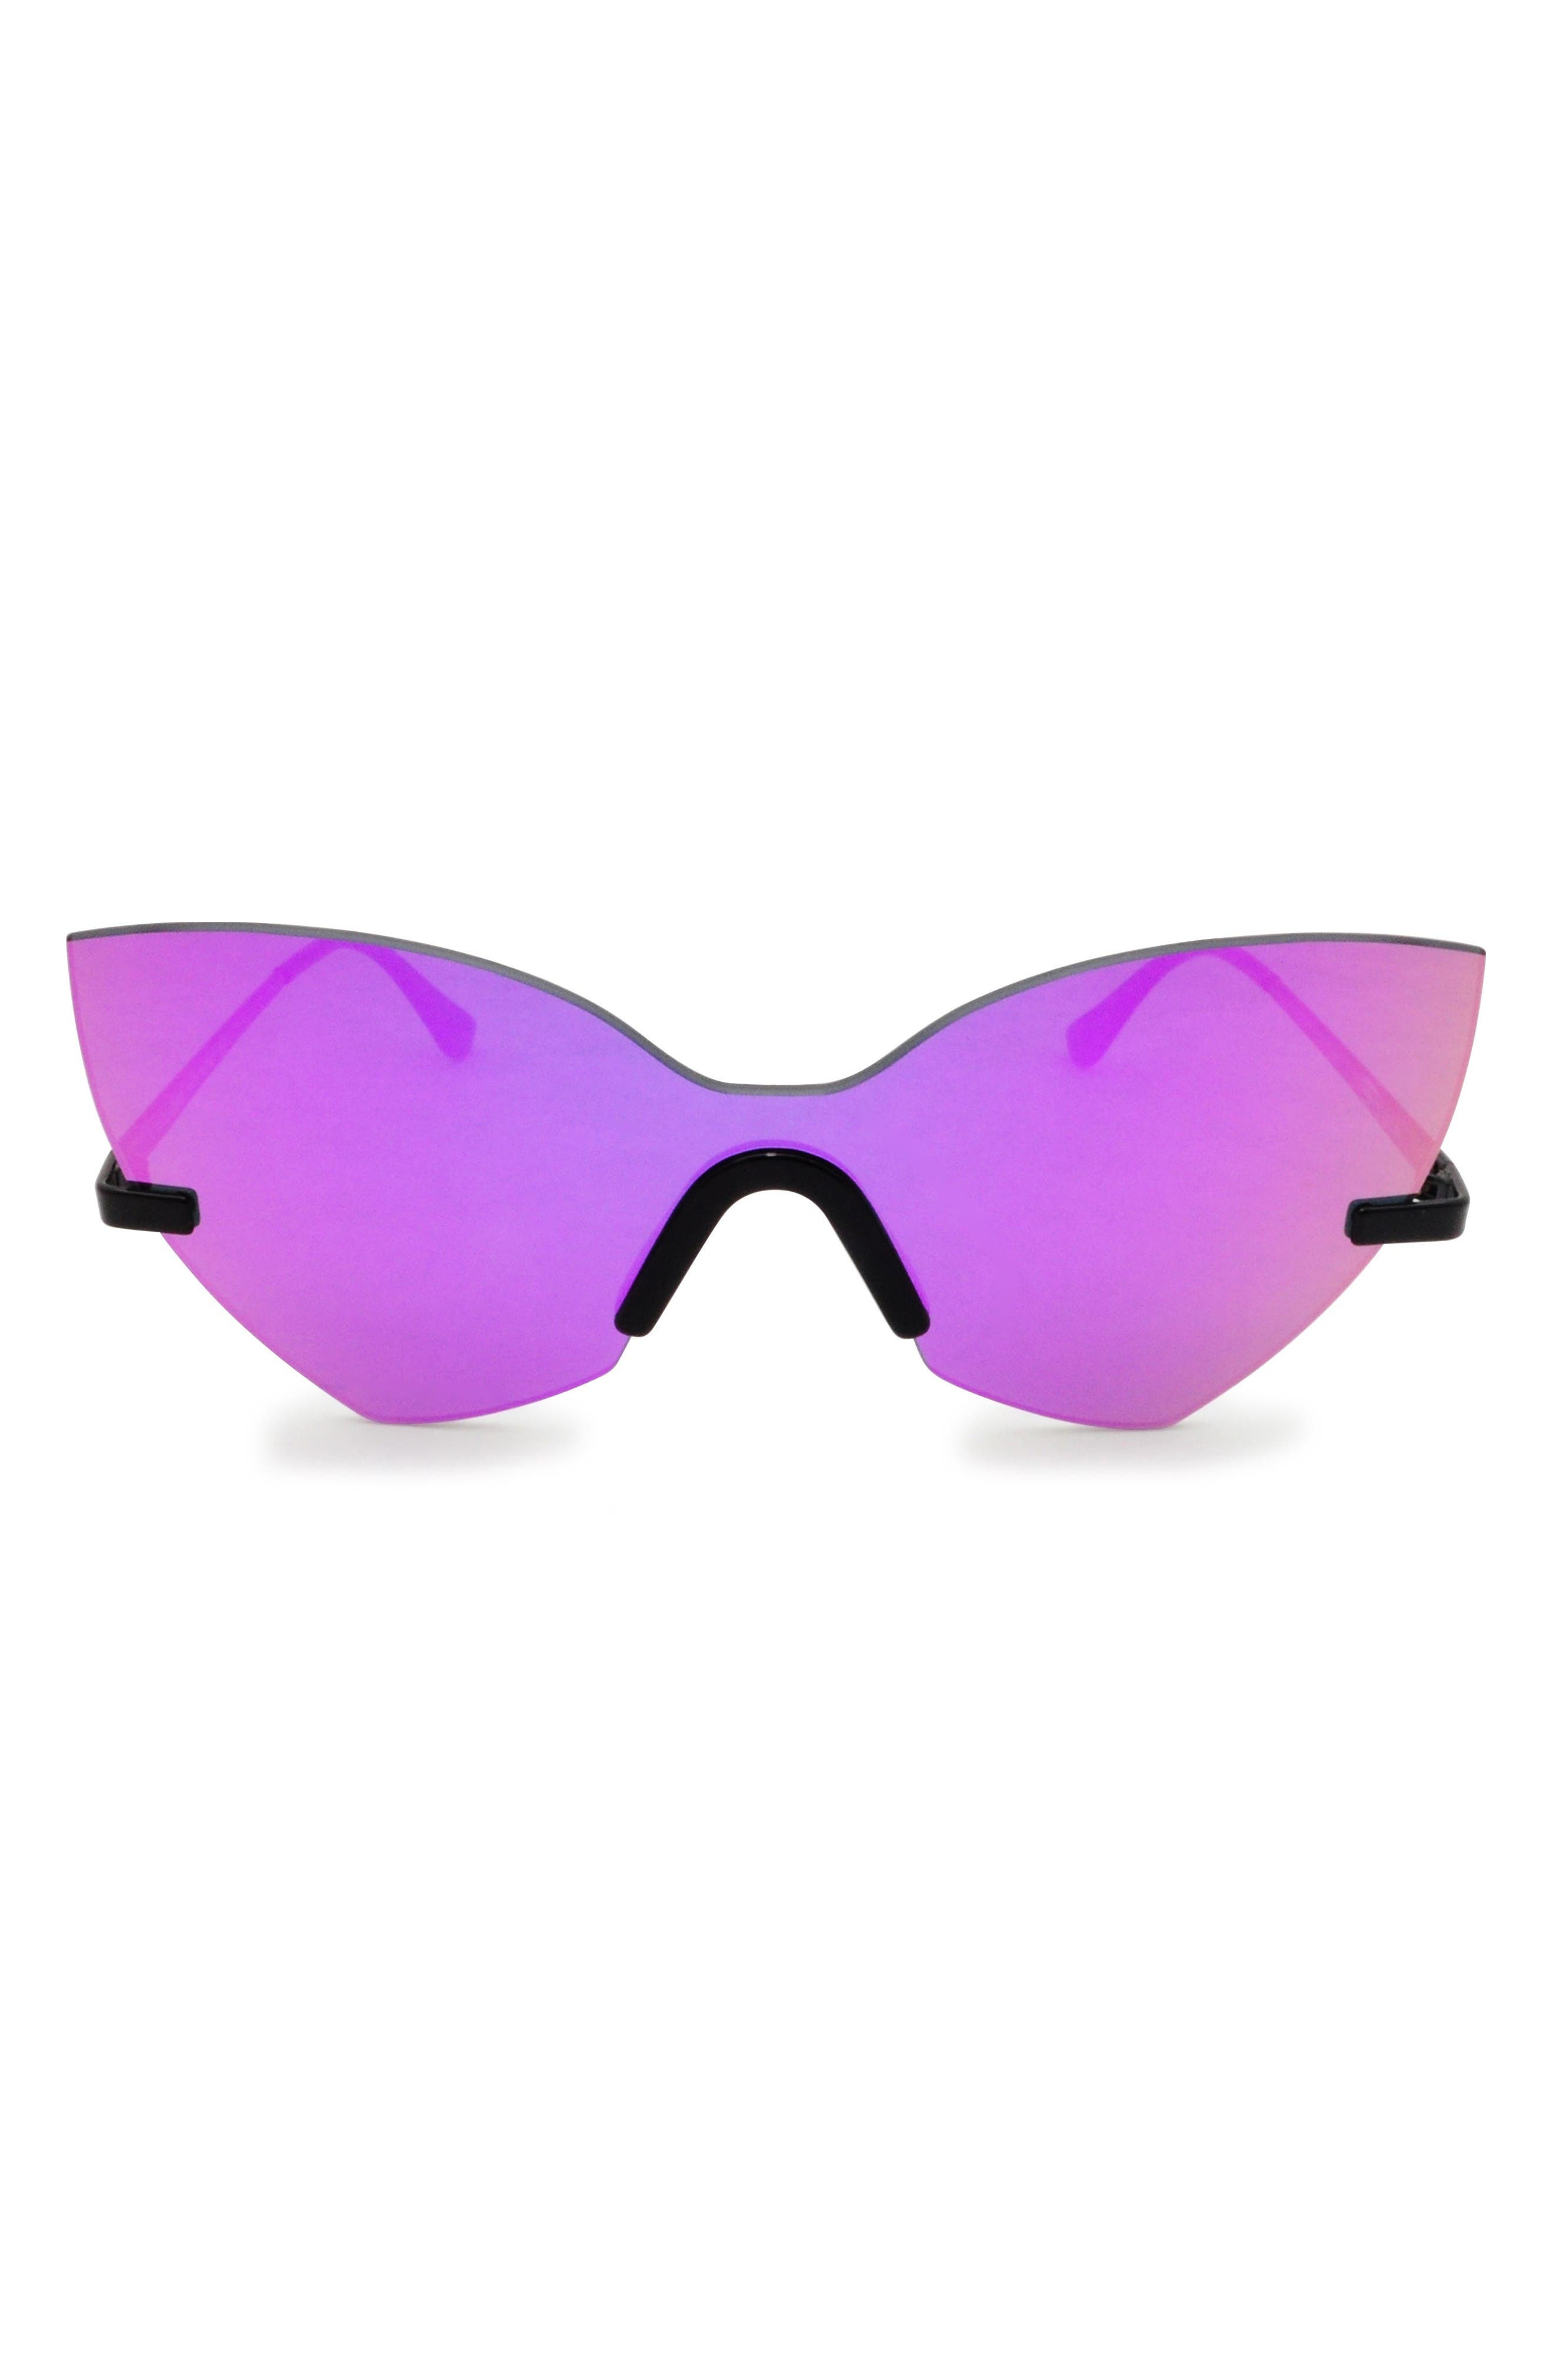 Main Image - GLASSING 55mm Cat Eye Shield Sunglasses